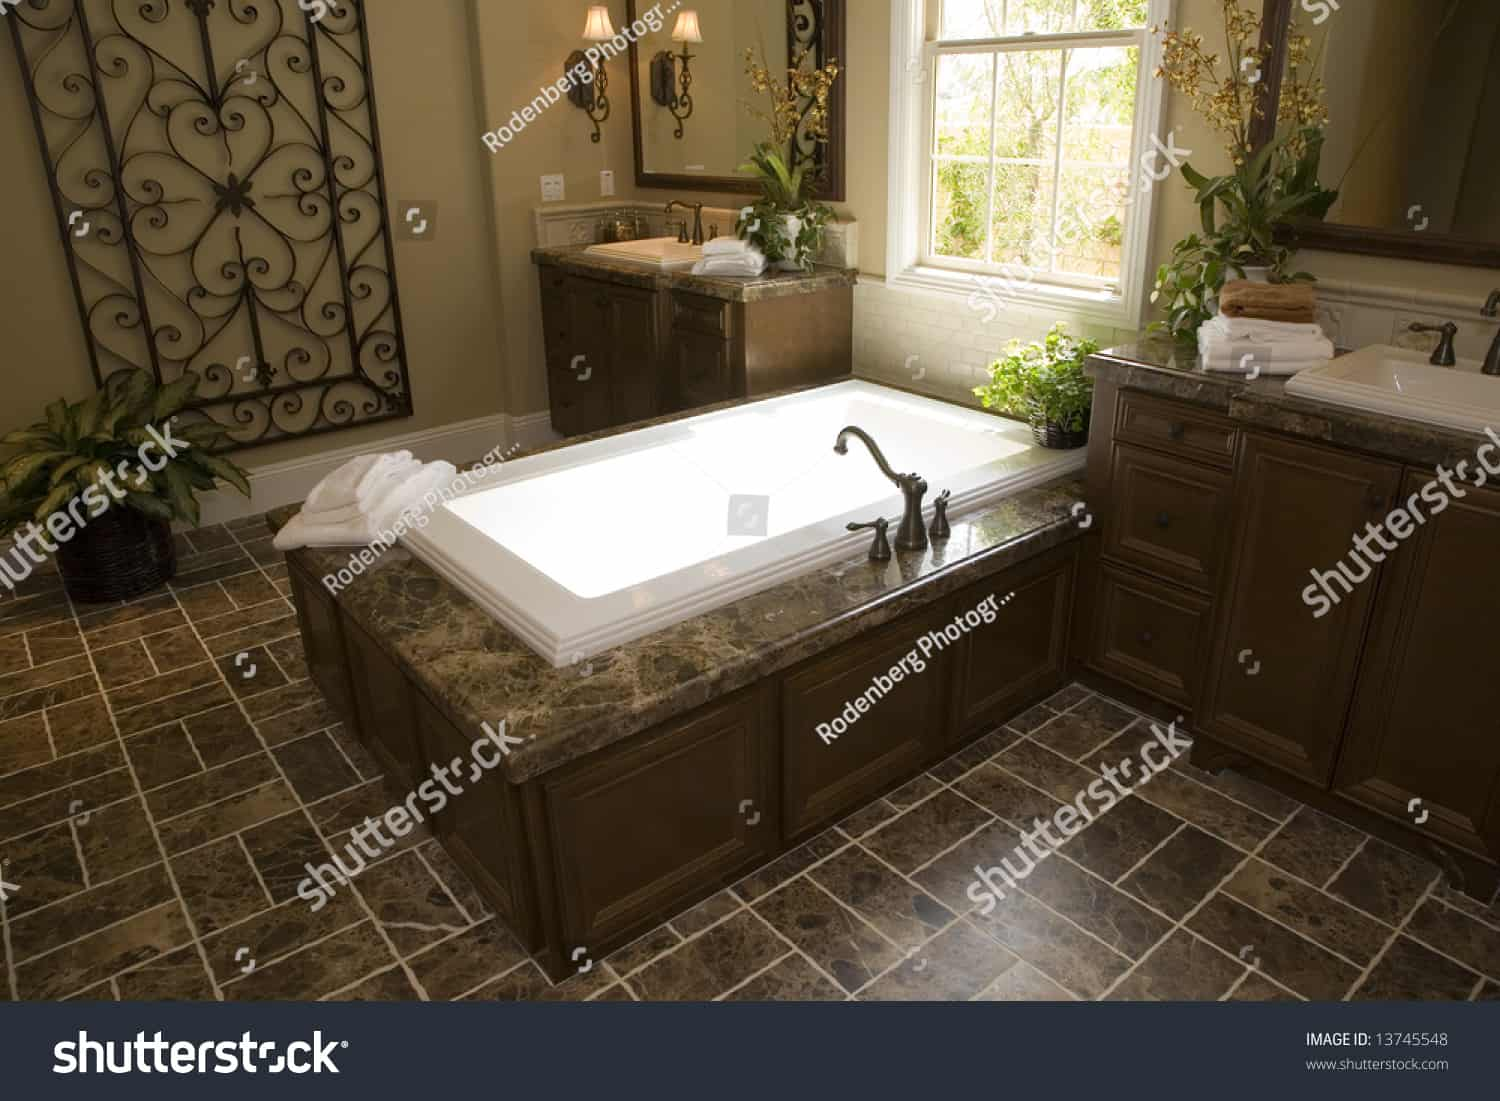 stock photo upscale bathroom with a modern tub and tile floor 13745548